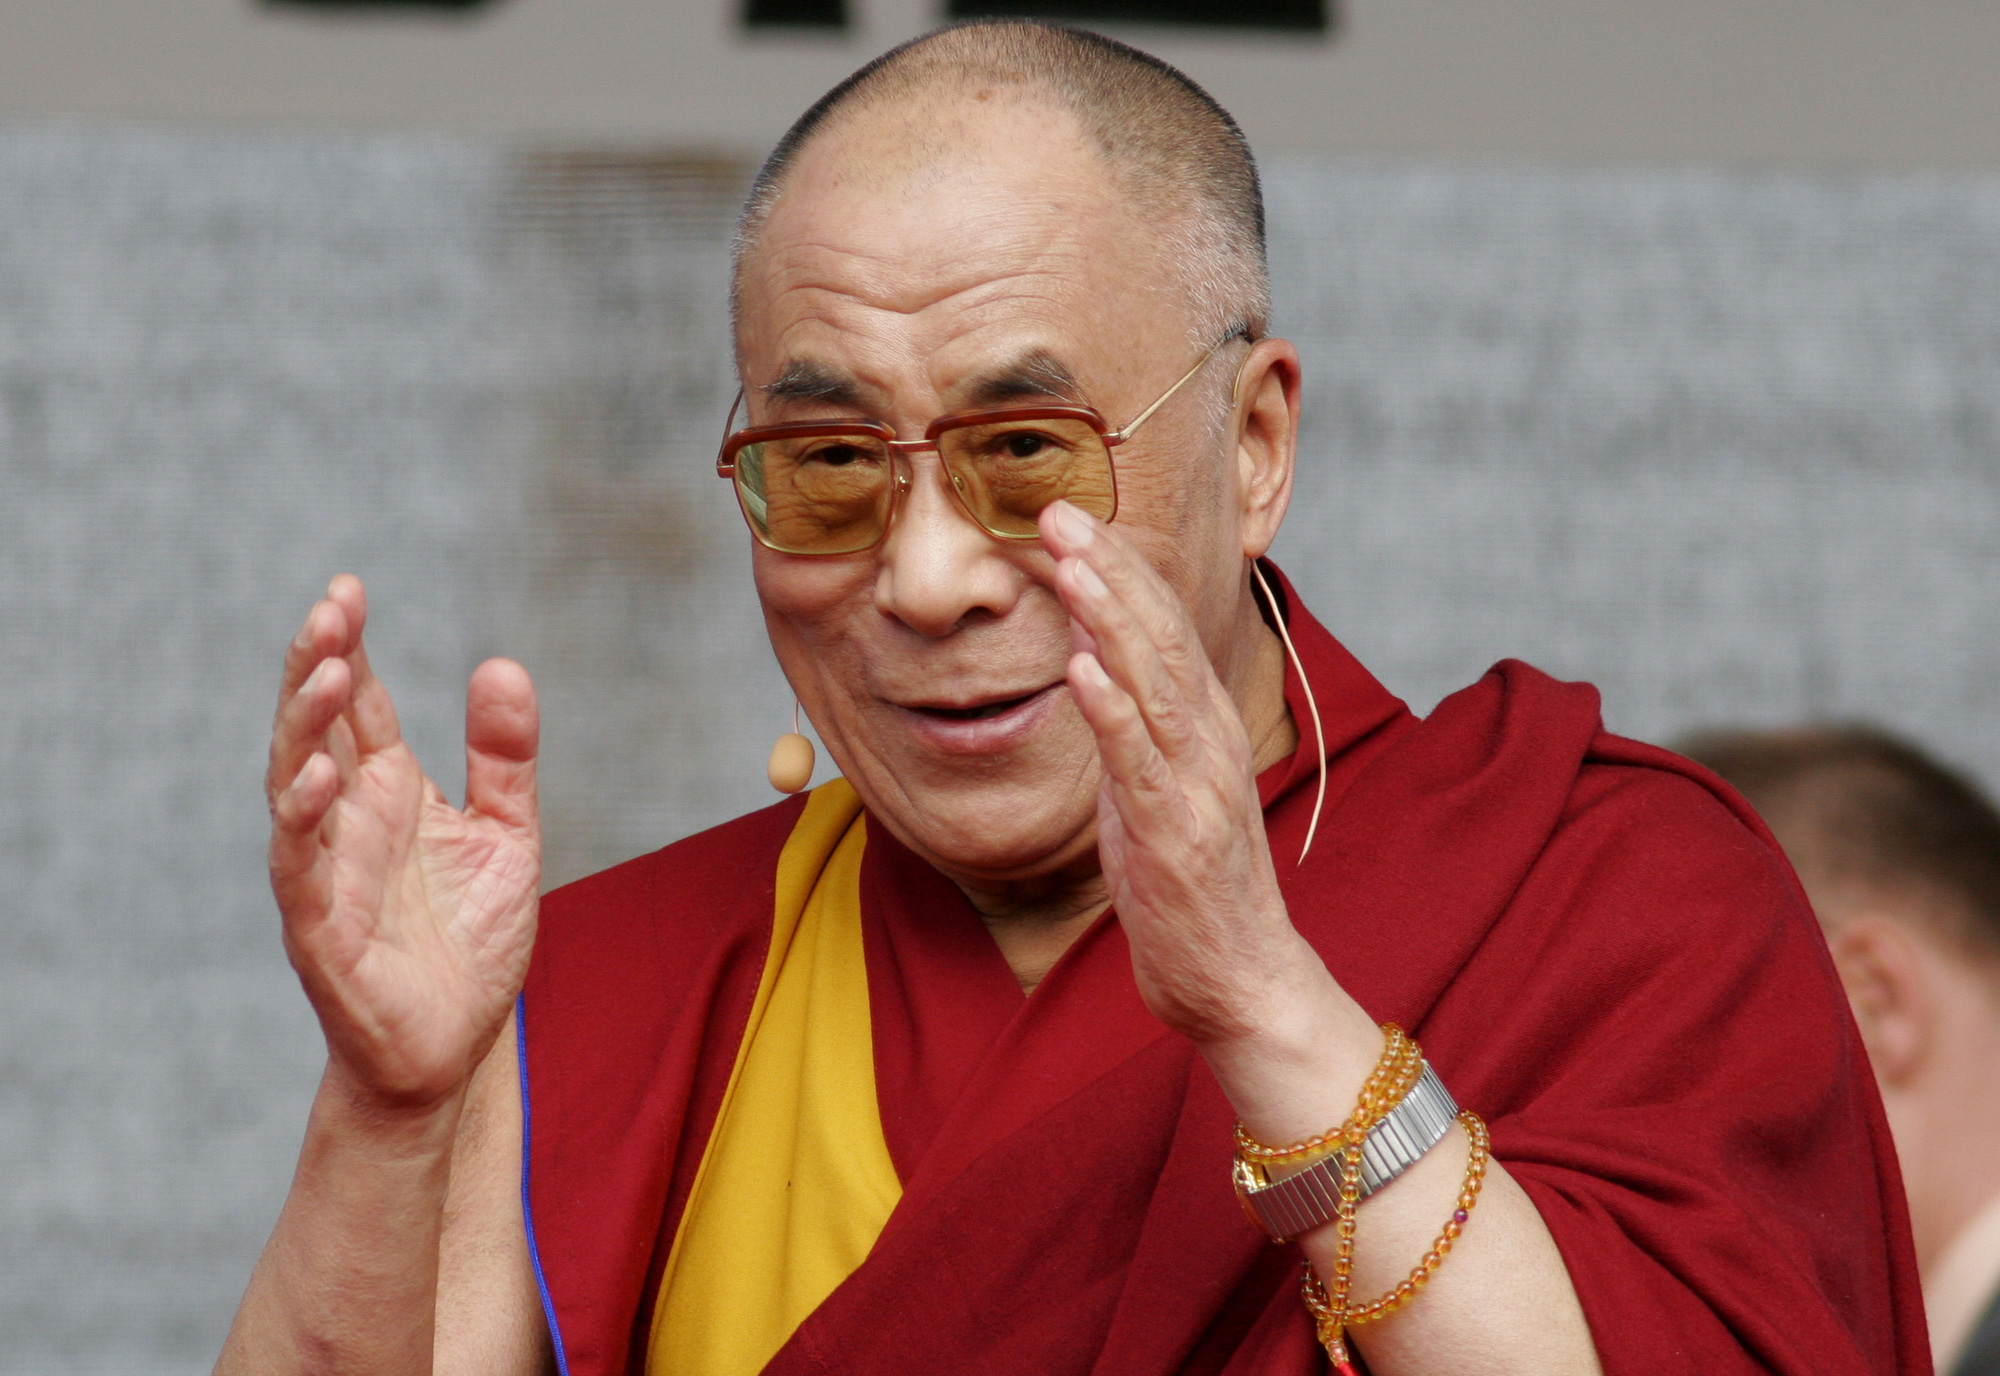 The people of India have offered the Dalai Lama love and respect; and these he has given back abundantly in return.